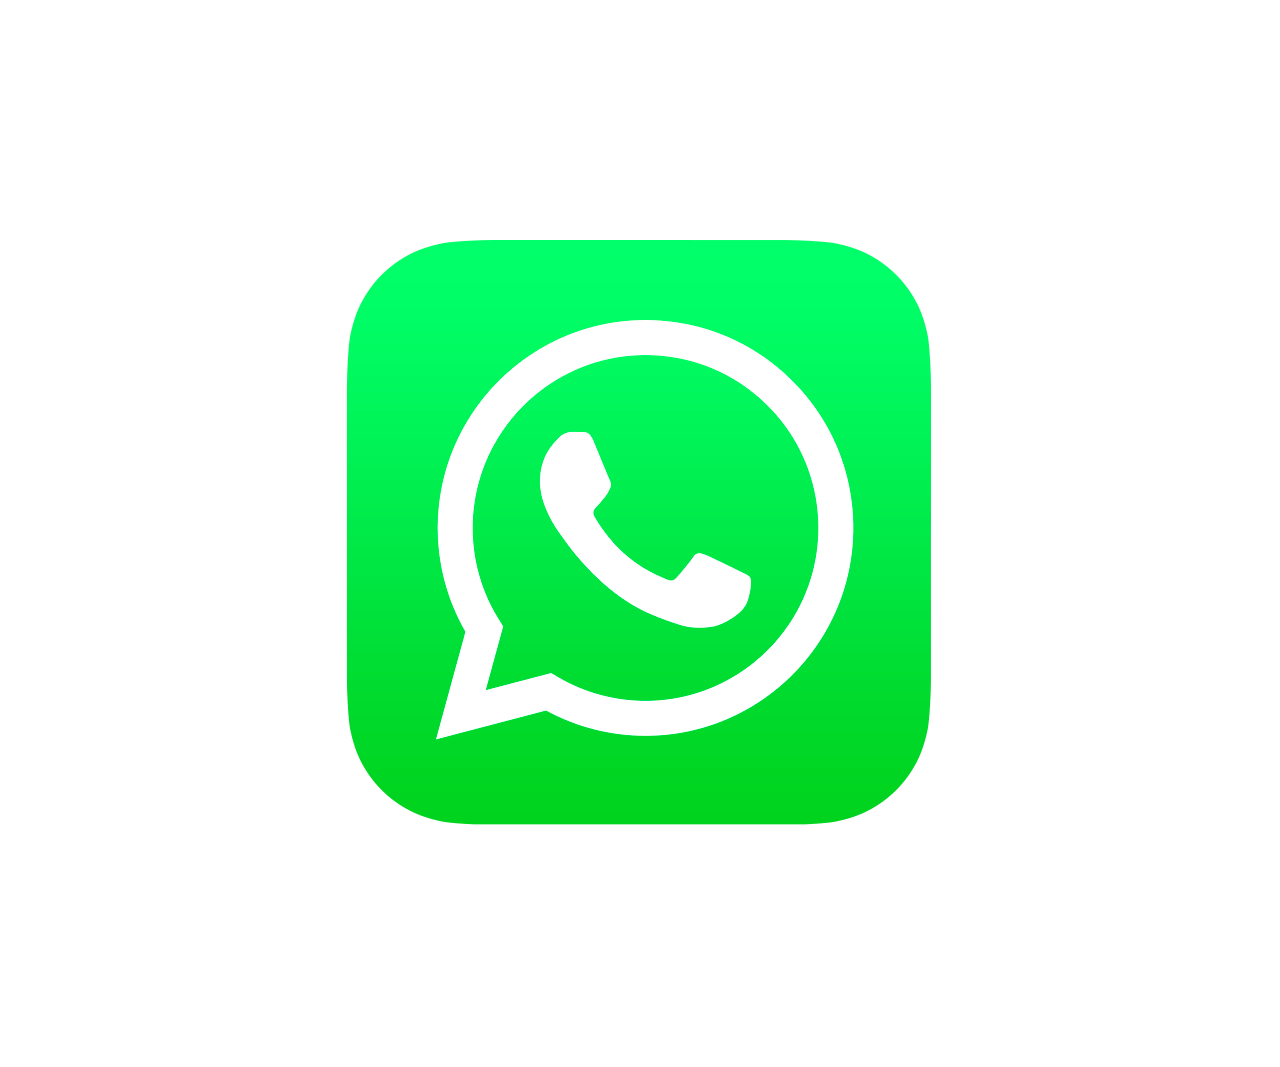 Whatsapp Ios Icono PNG transparente - StickPNG